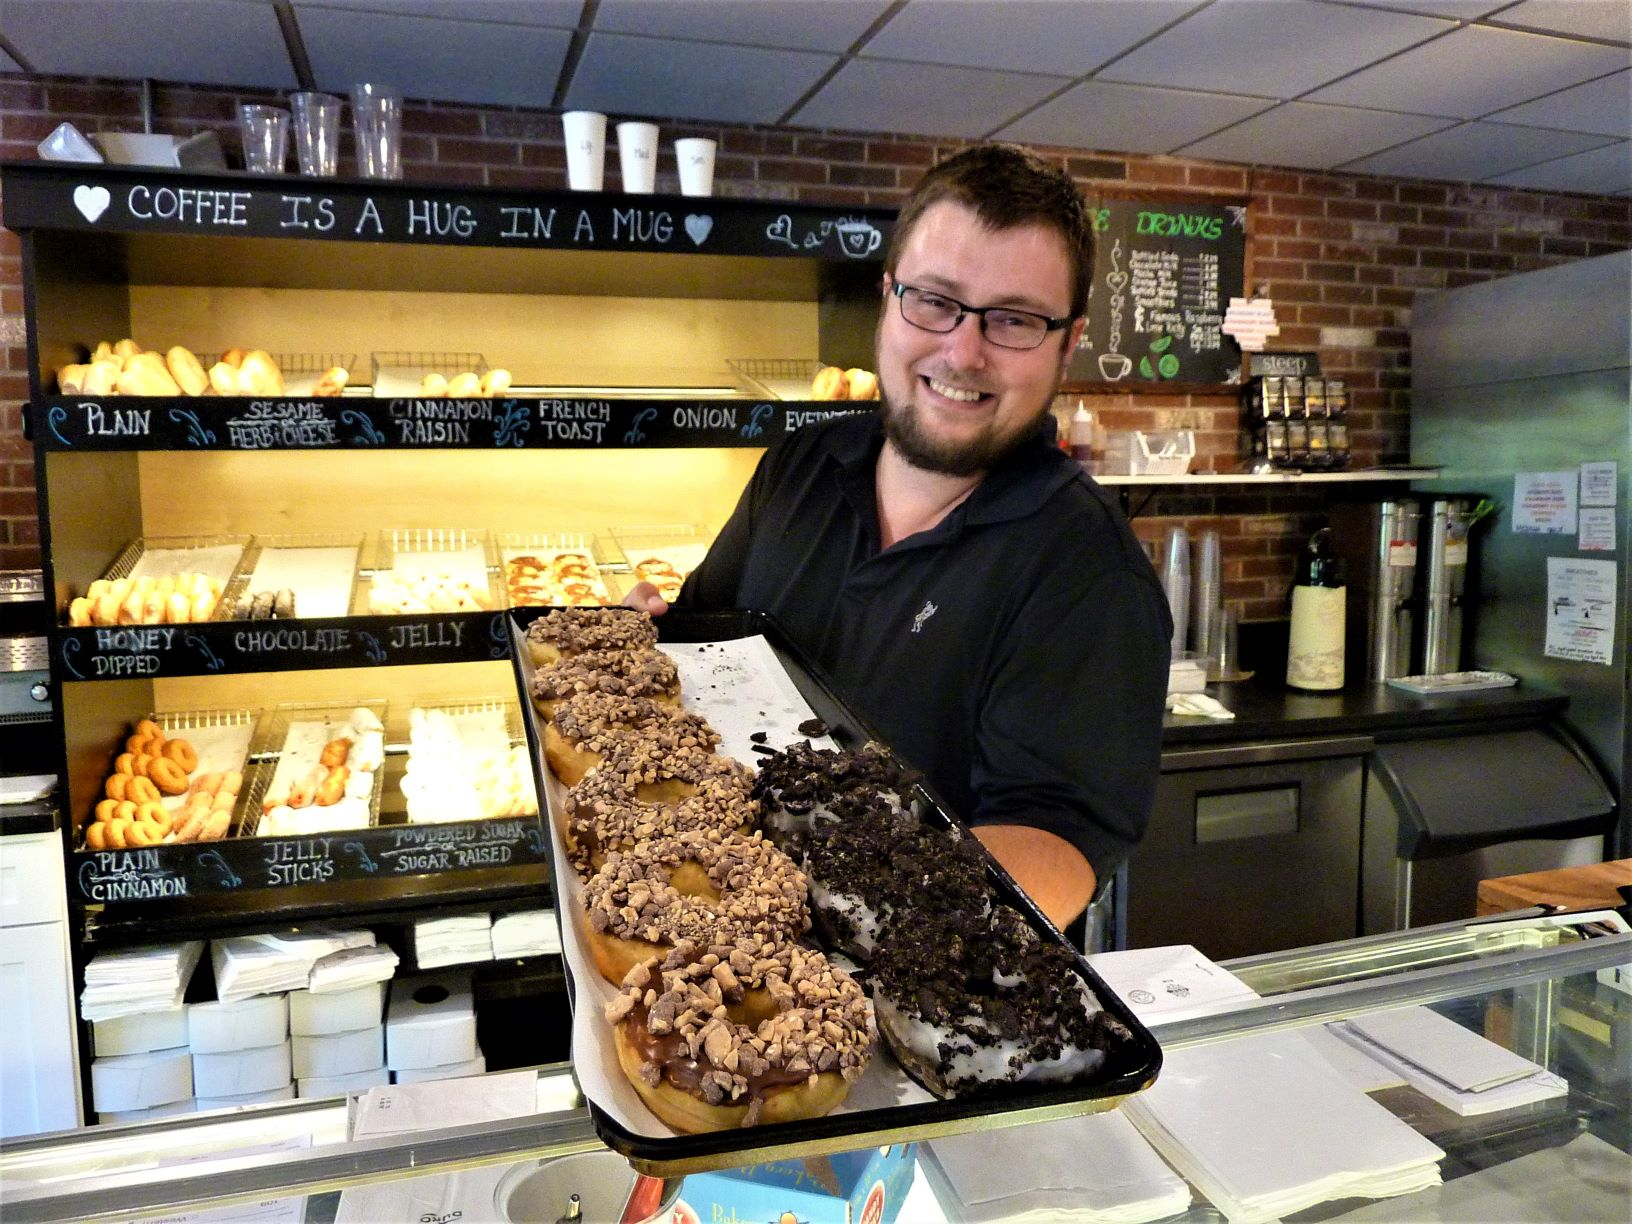 Trevor Stevens brings out fresh doughnuts from Country Kitchen Donuts in Millis, Mass.